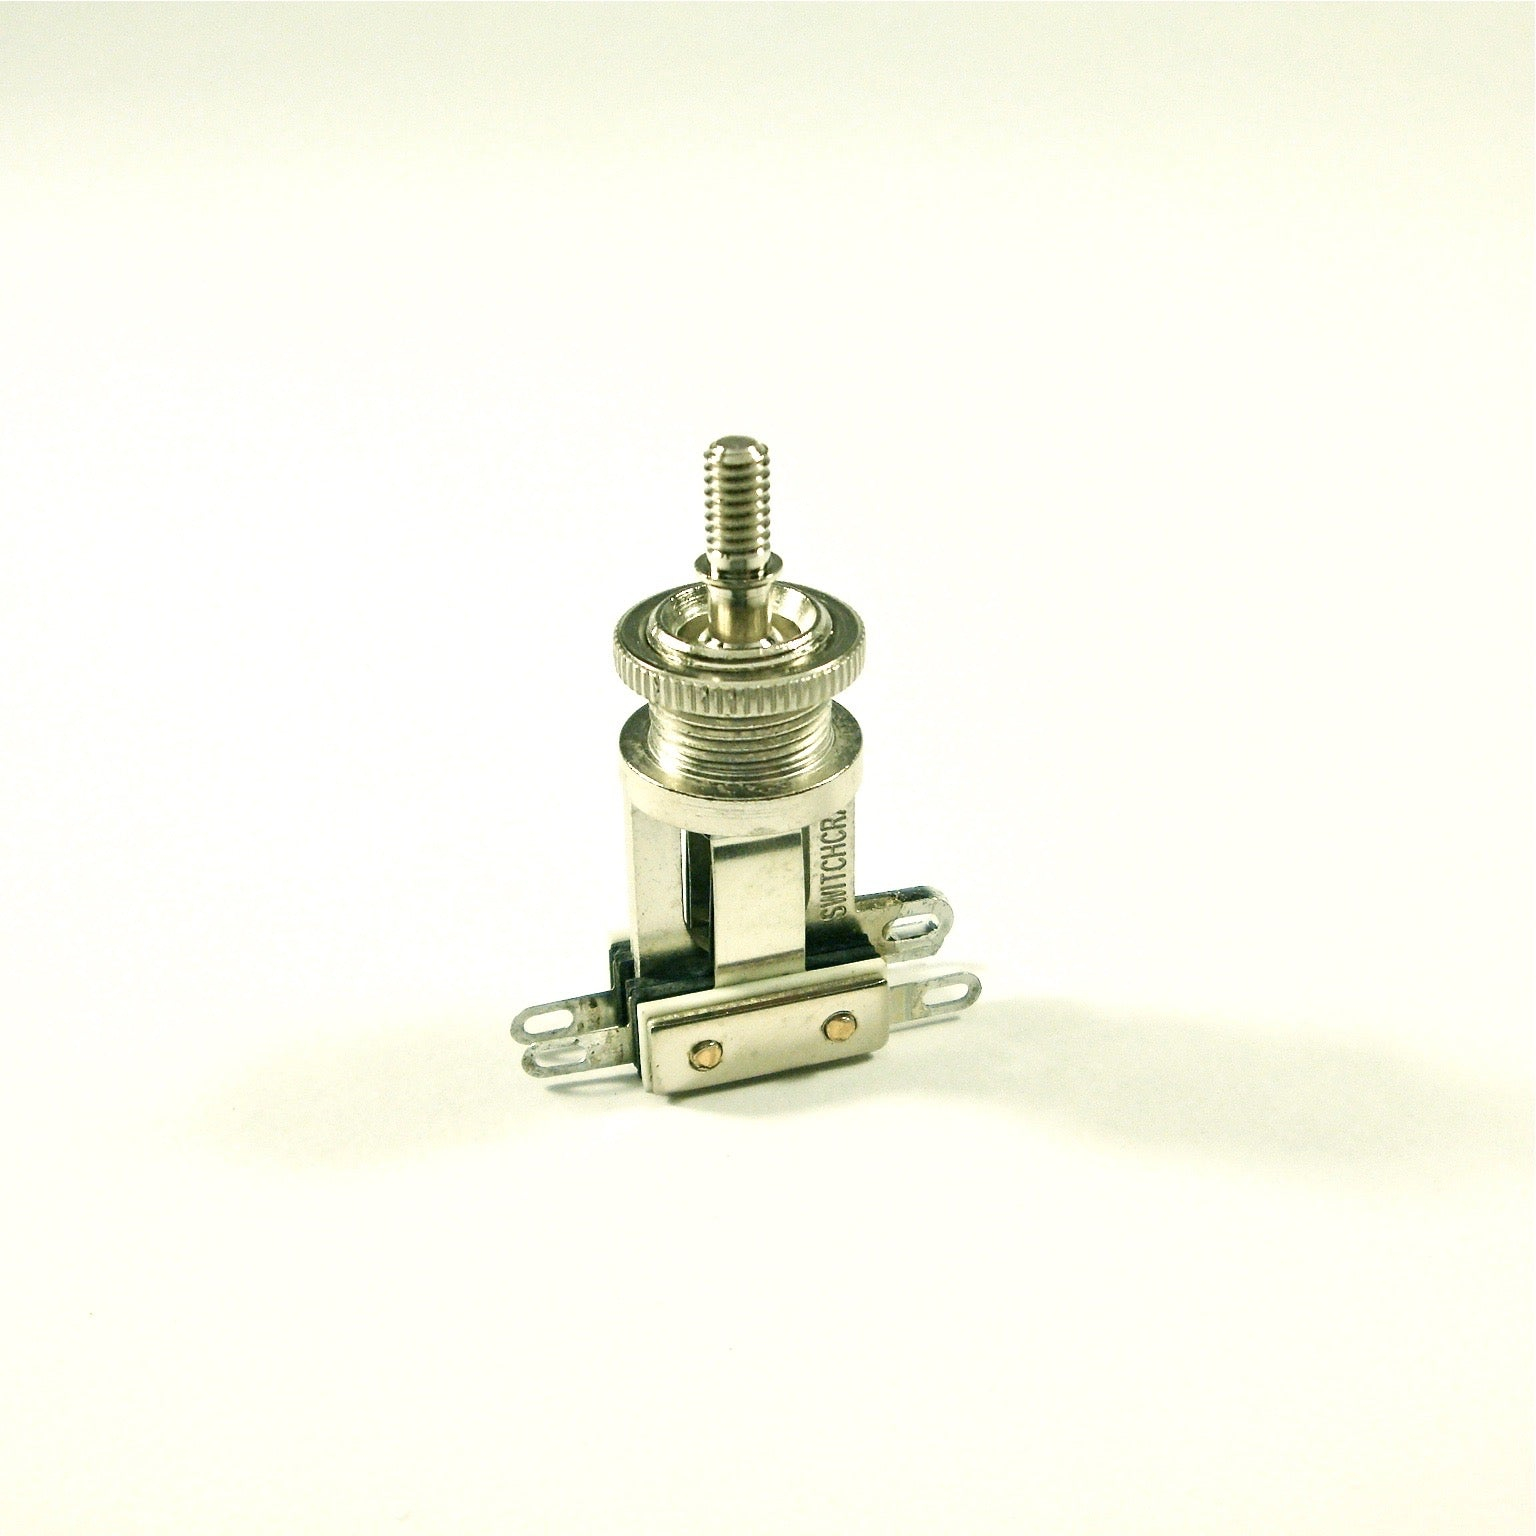 Switchcraft 3-way toggle switch, short model